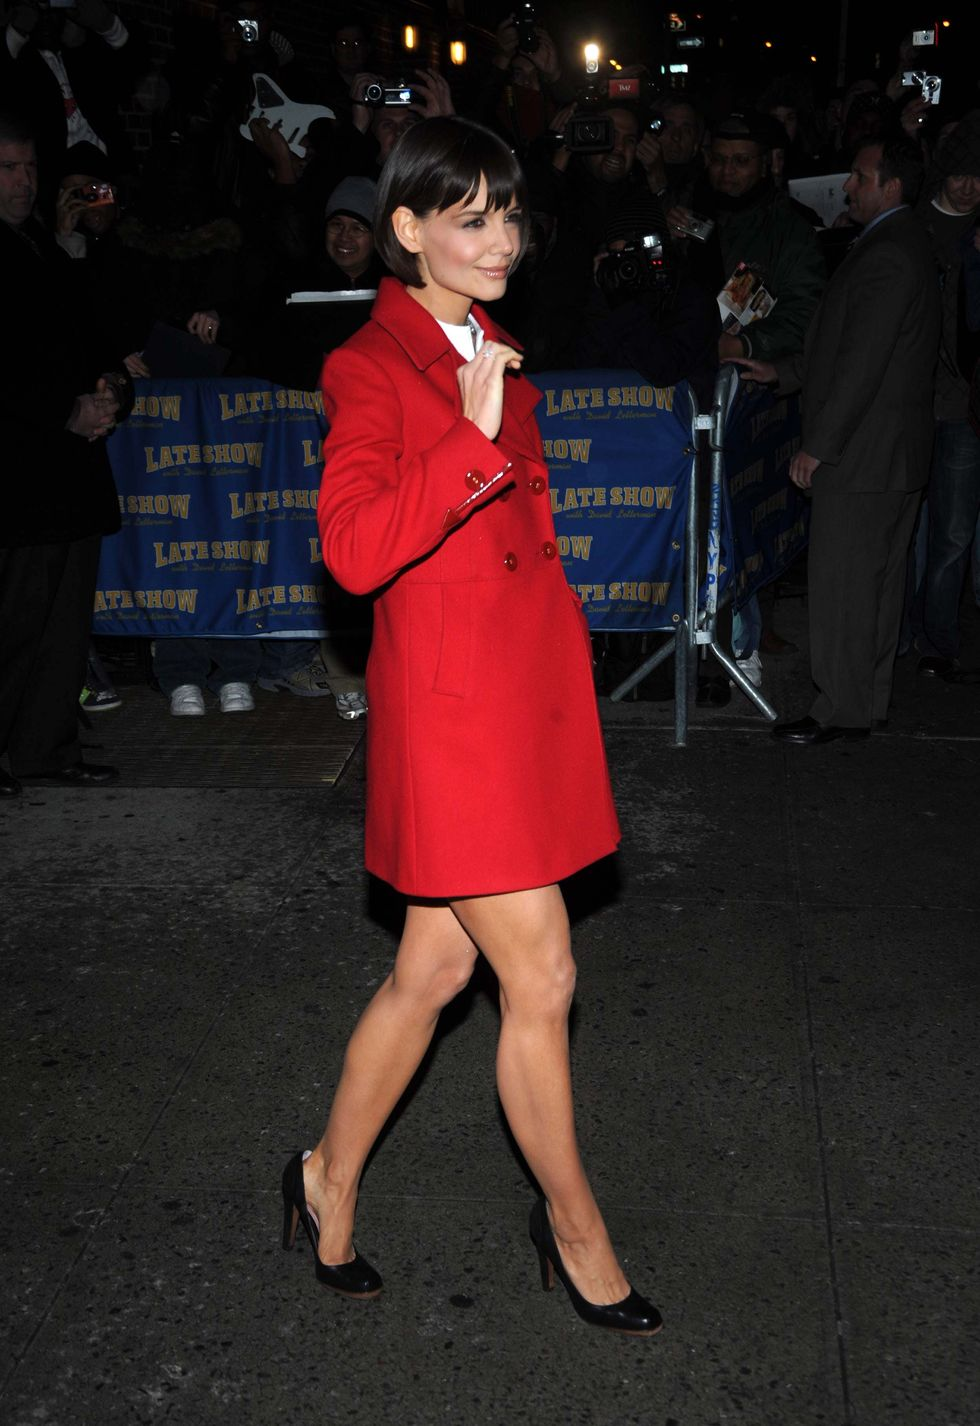 katie-holmes-arrives-to-the-late-show-with-david-letterman-01